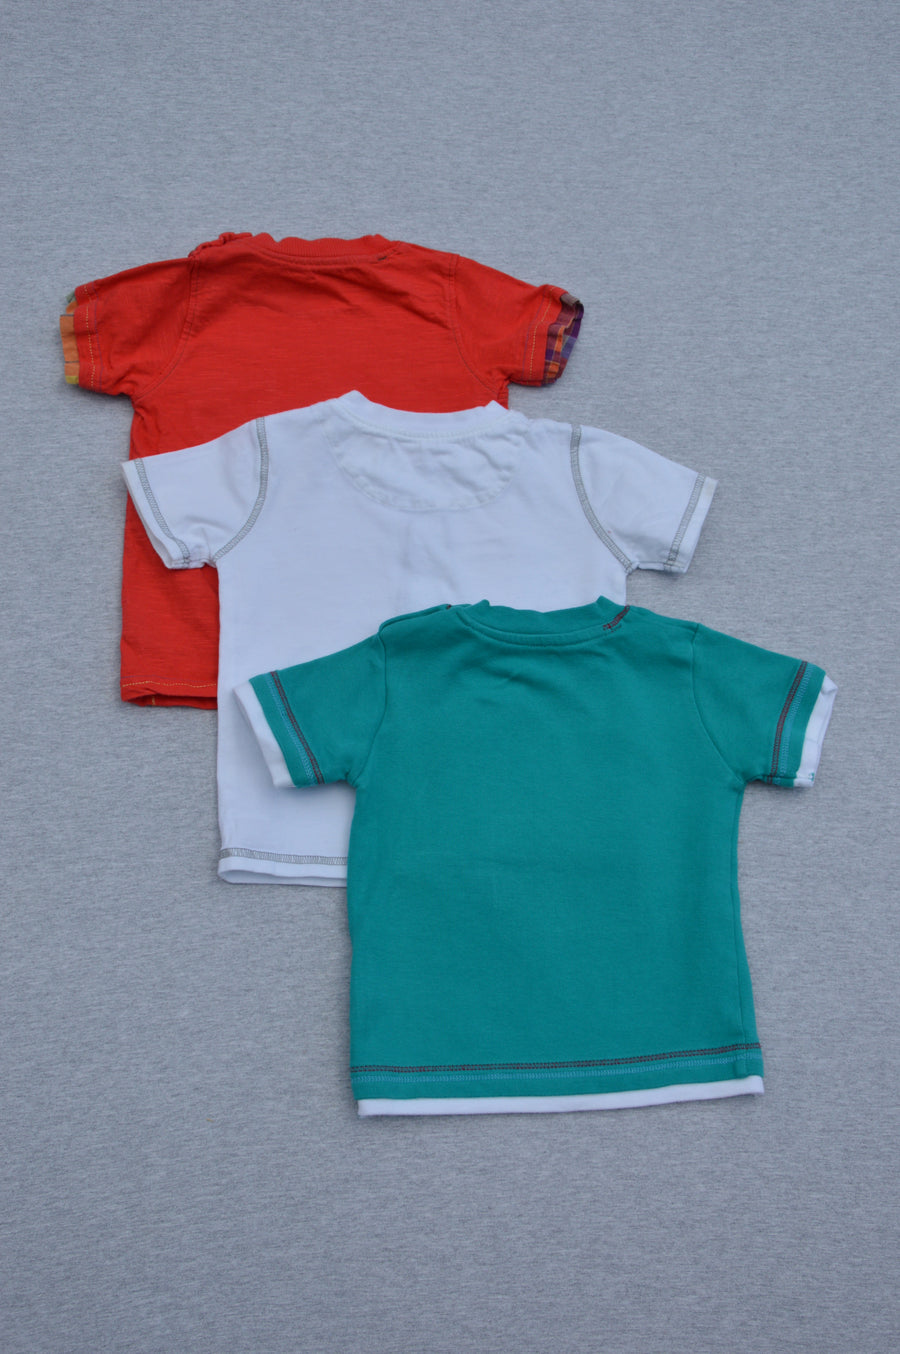 George 3 x red, green & white short-sleeve t-shirts, size 12-18m